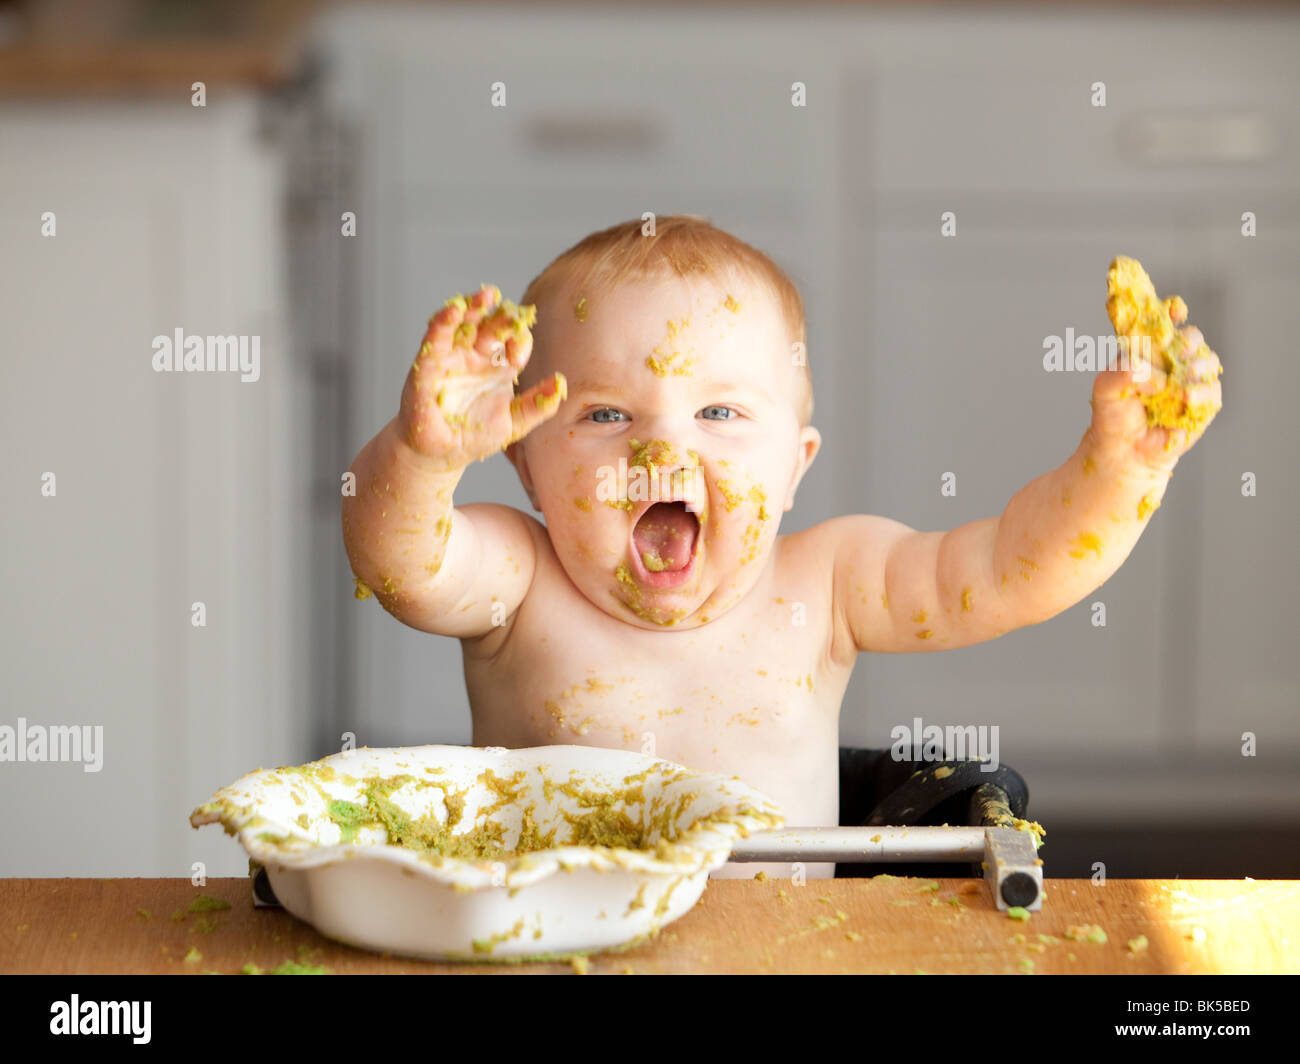 Happy baby playing in bowl of peas - Stock Image